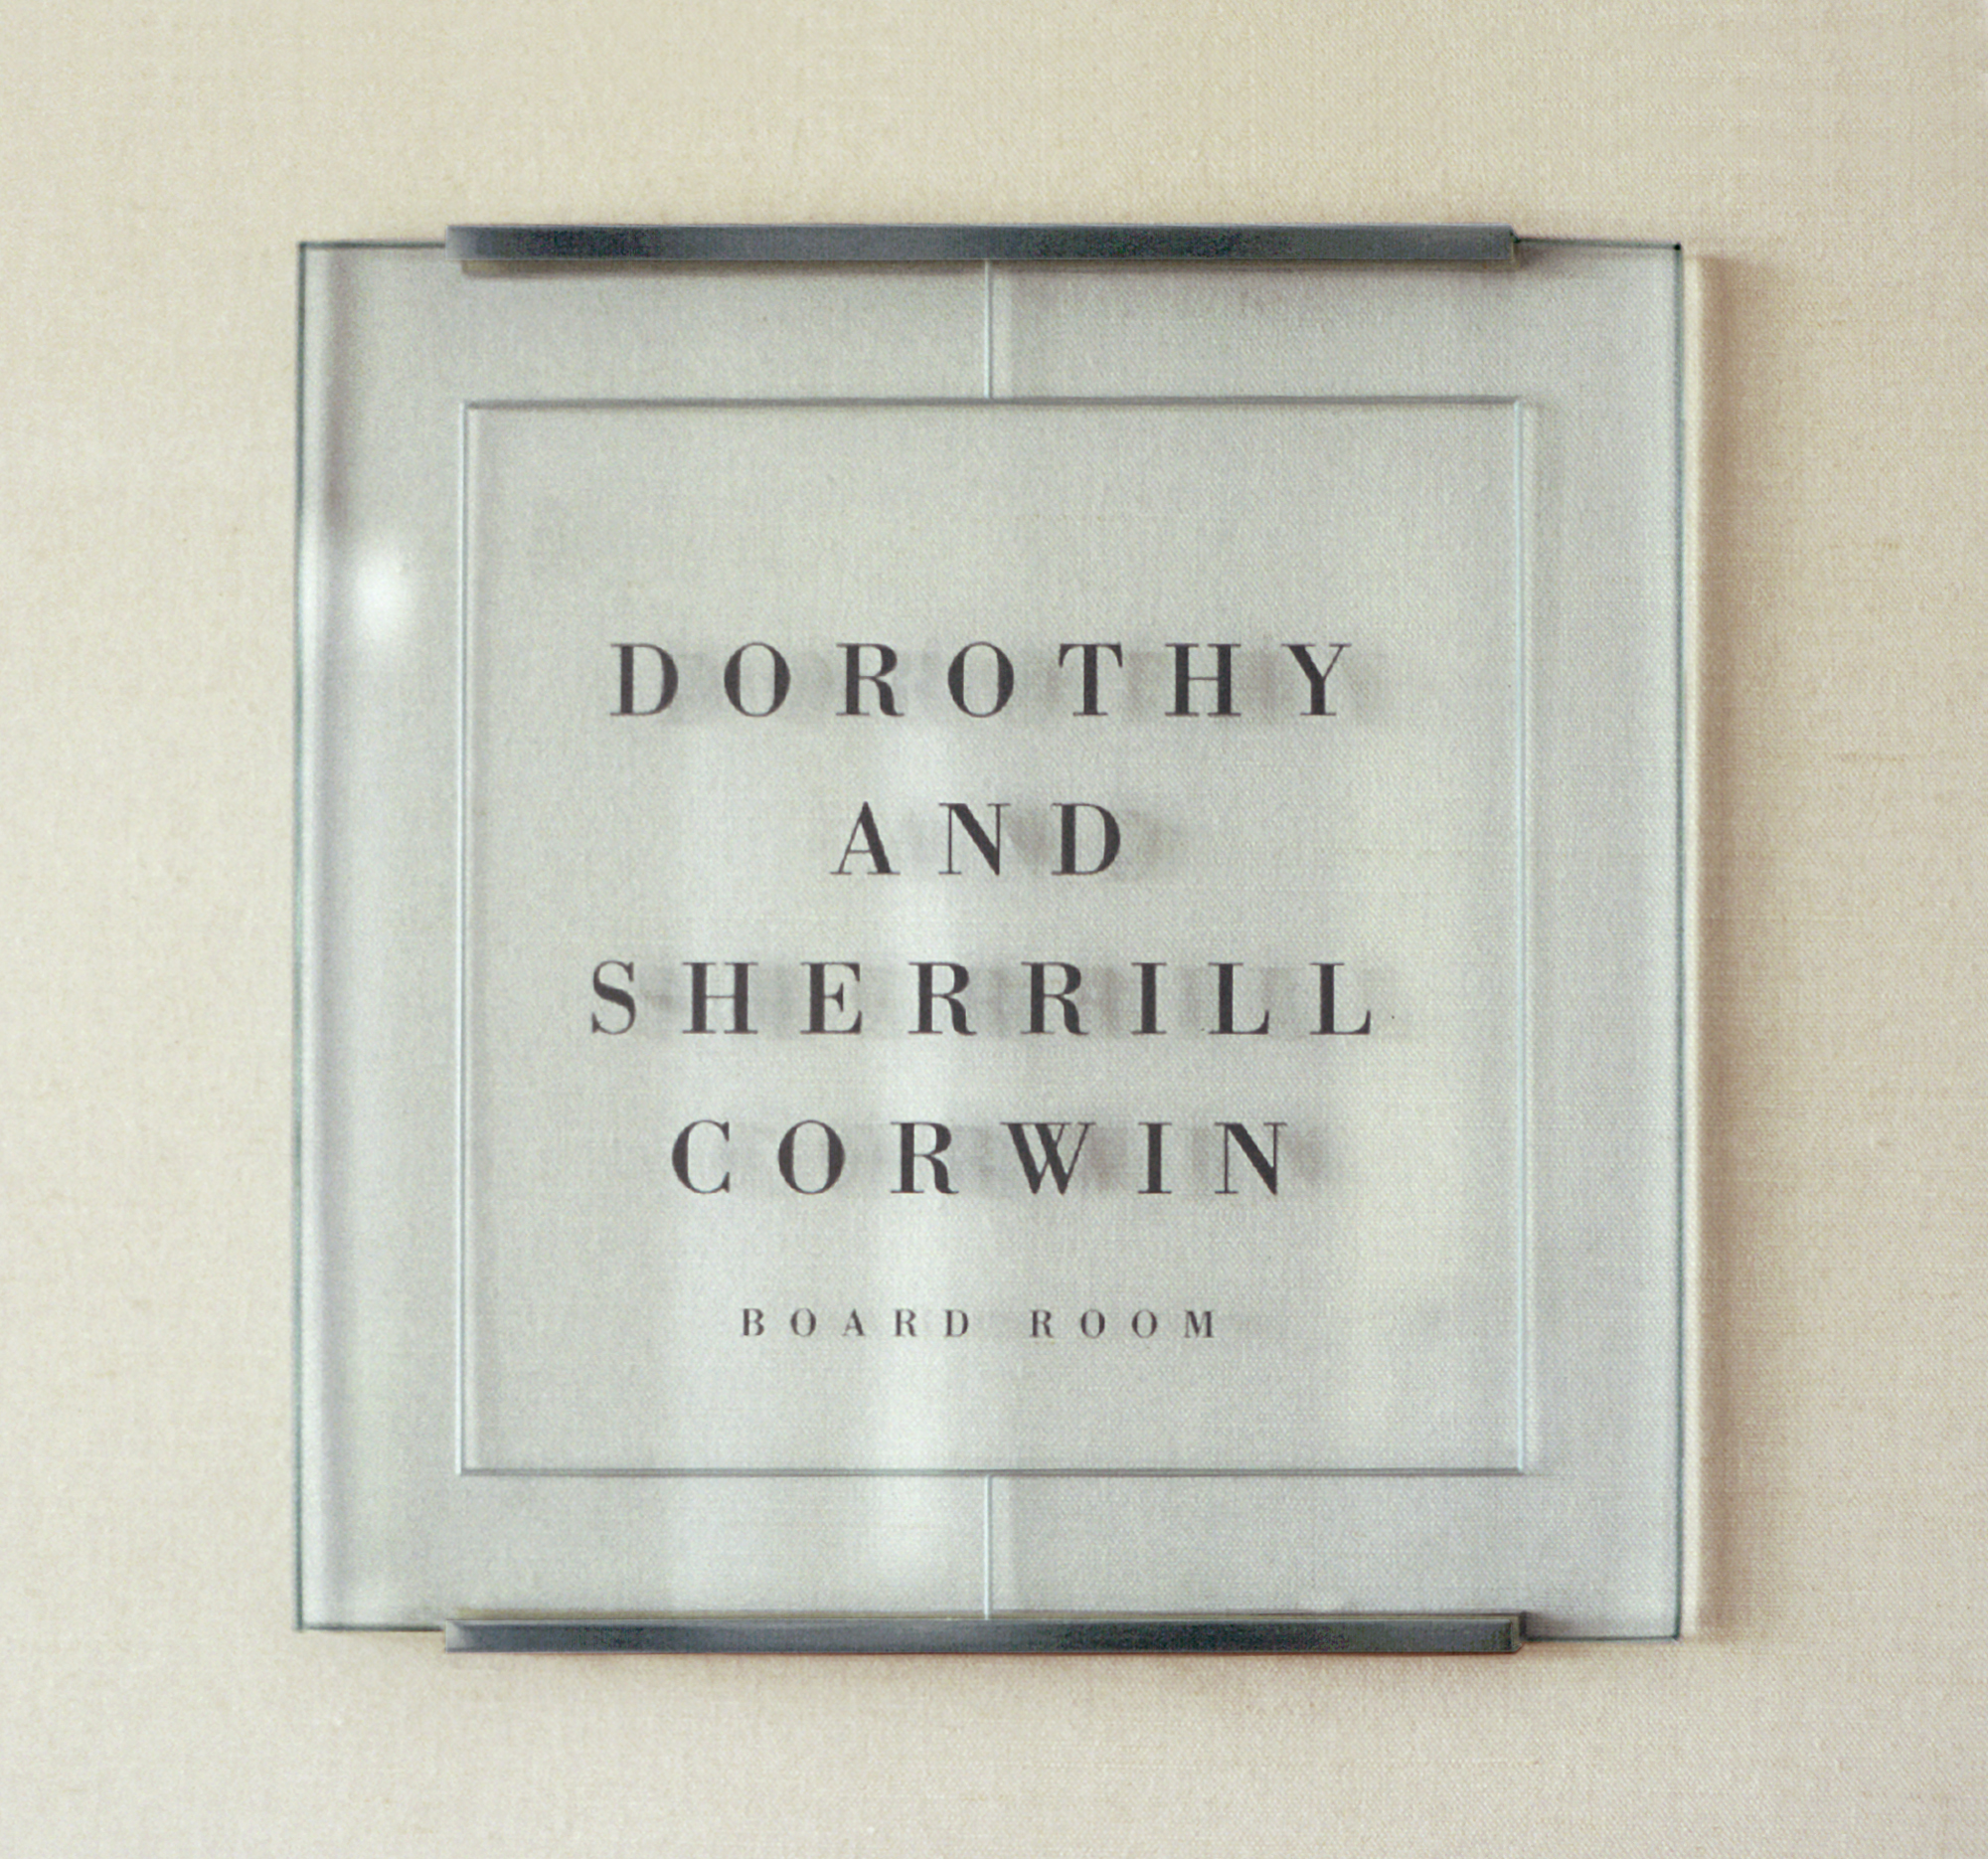 Glass Donor Plaque.jpg